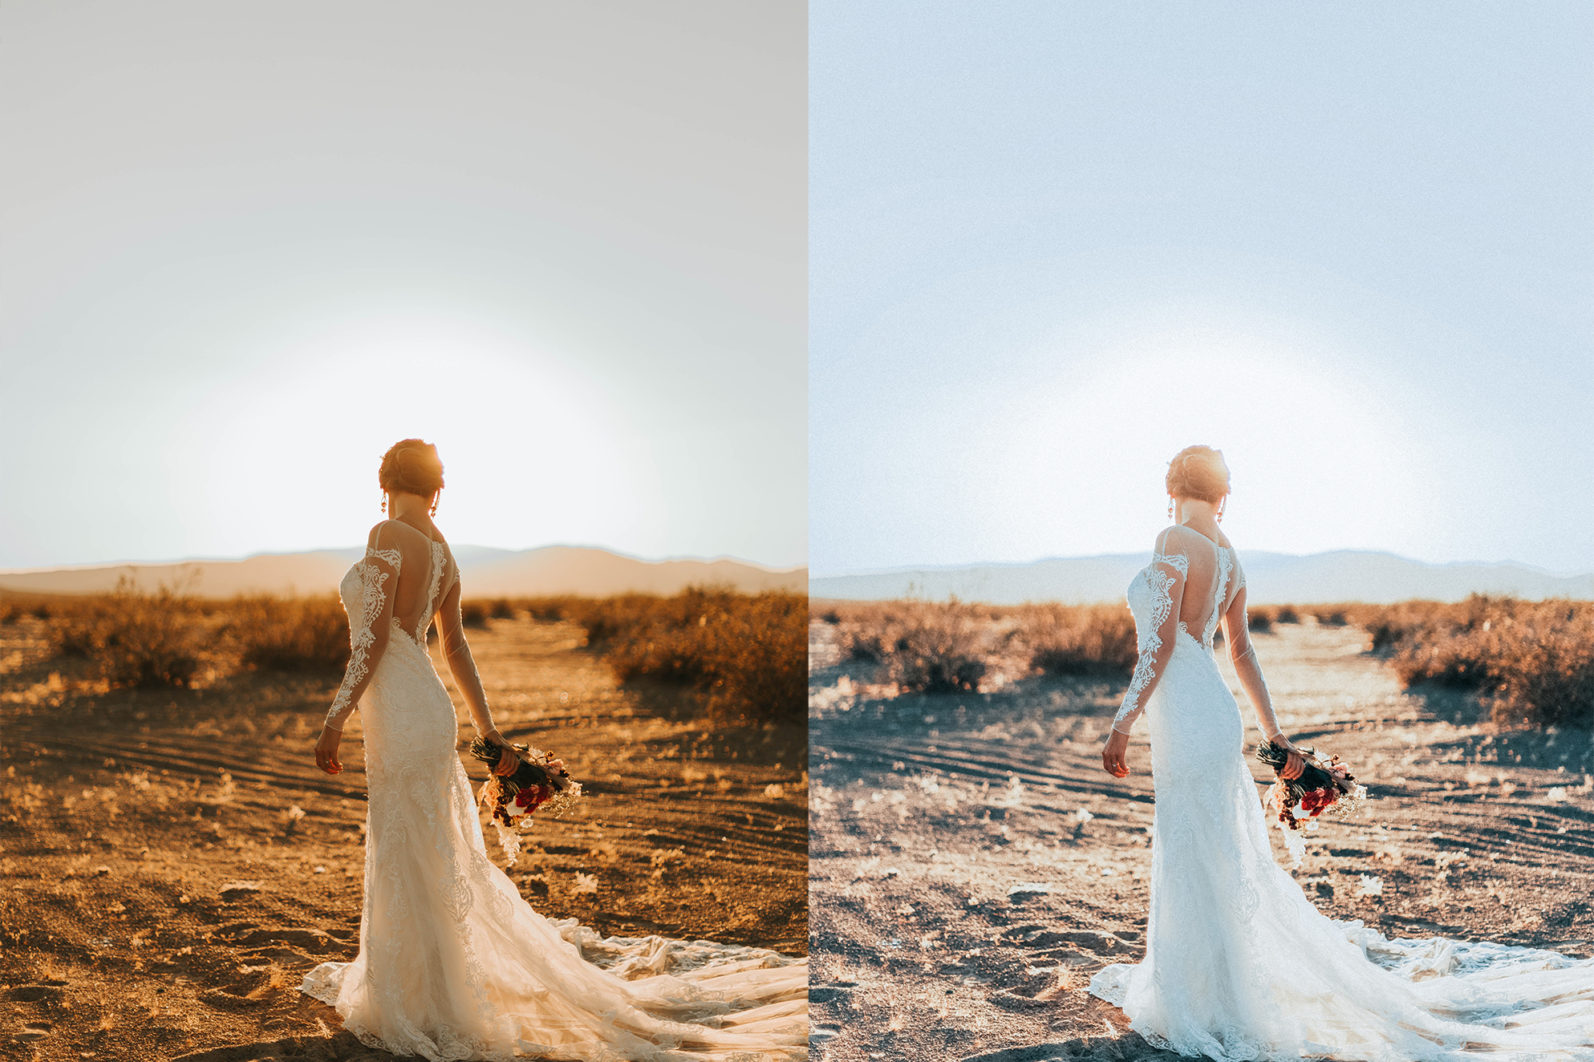 50 x TRAVEL BLOGGER PRESETS // Collect Memories // THE ONLY PRESETS YOU WILL EVER NEED - Preview 3 1 -